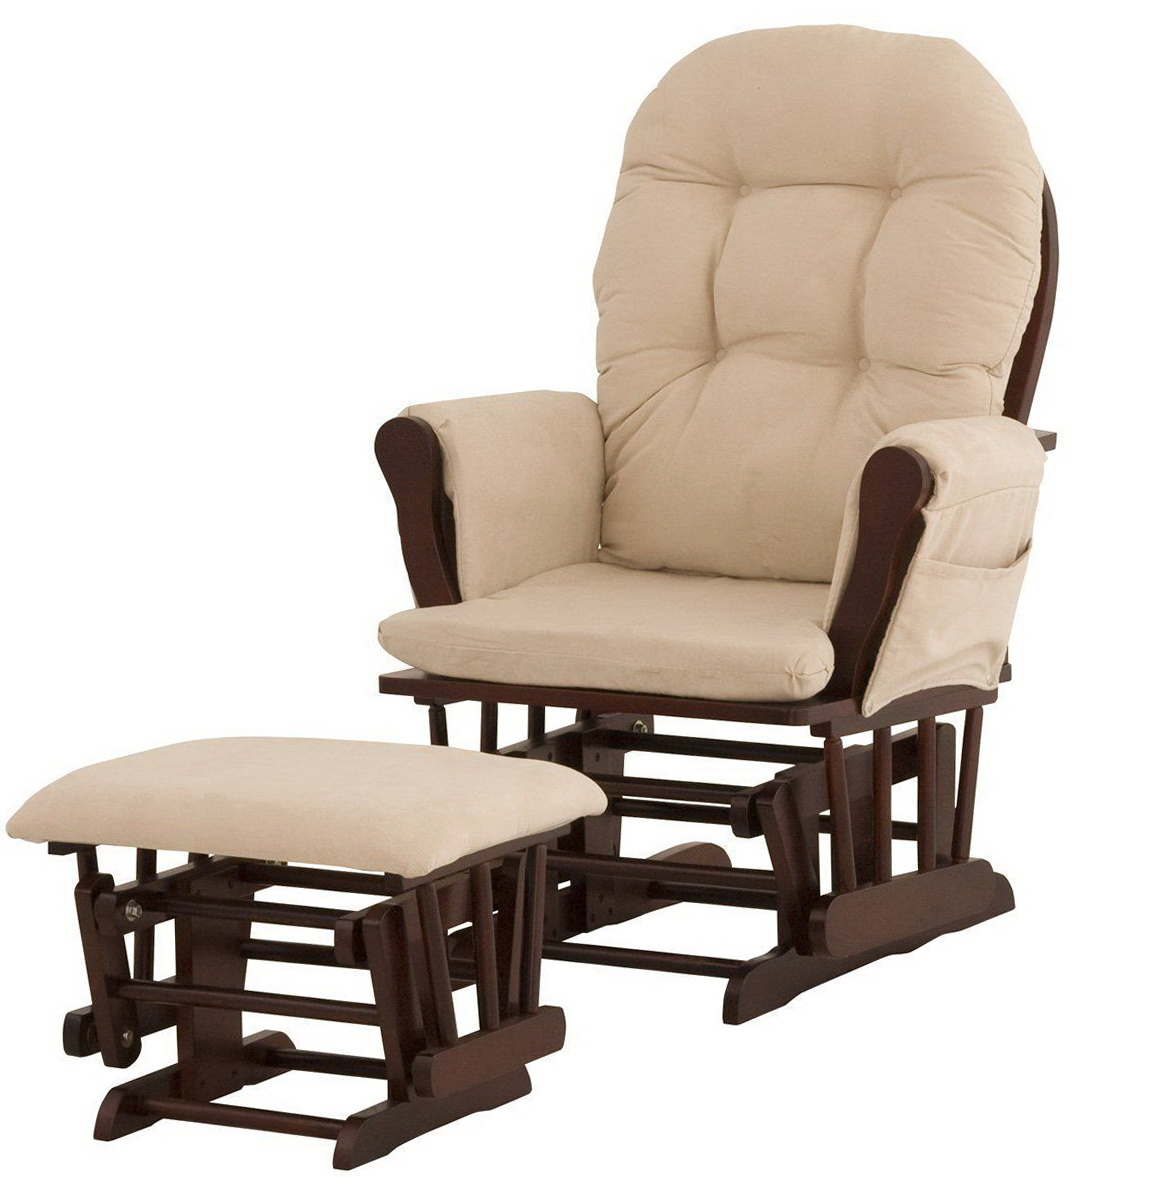 Baby Rocking Chair And Ottoman